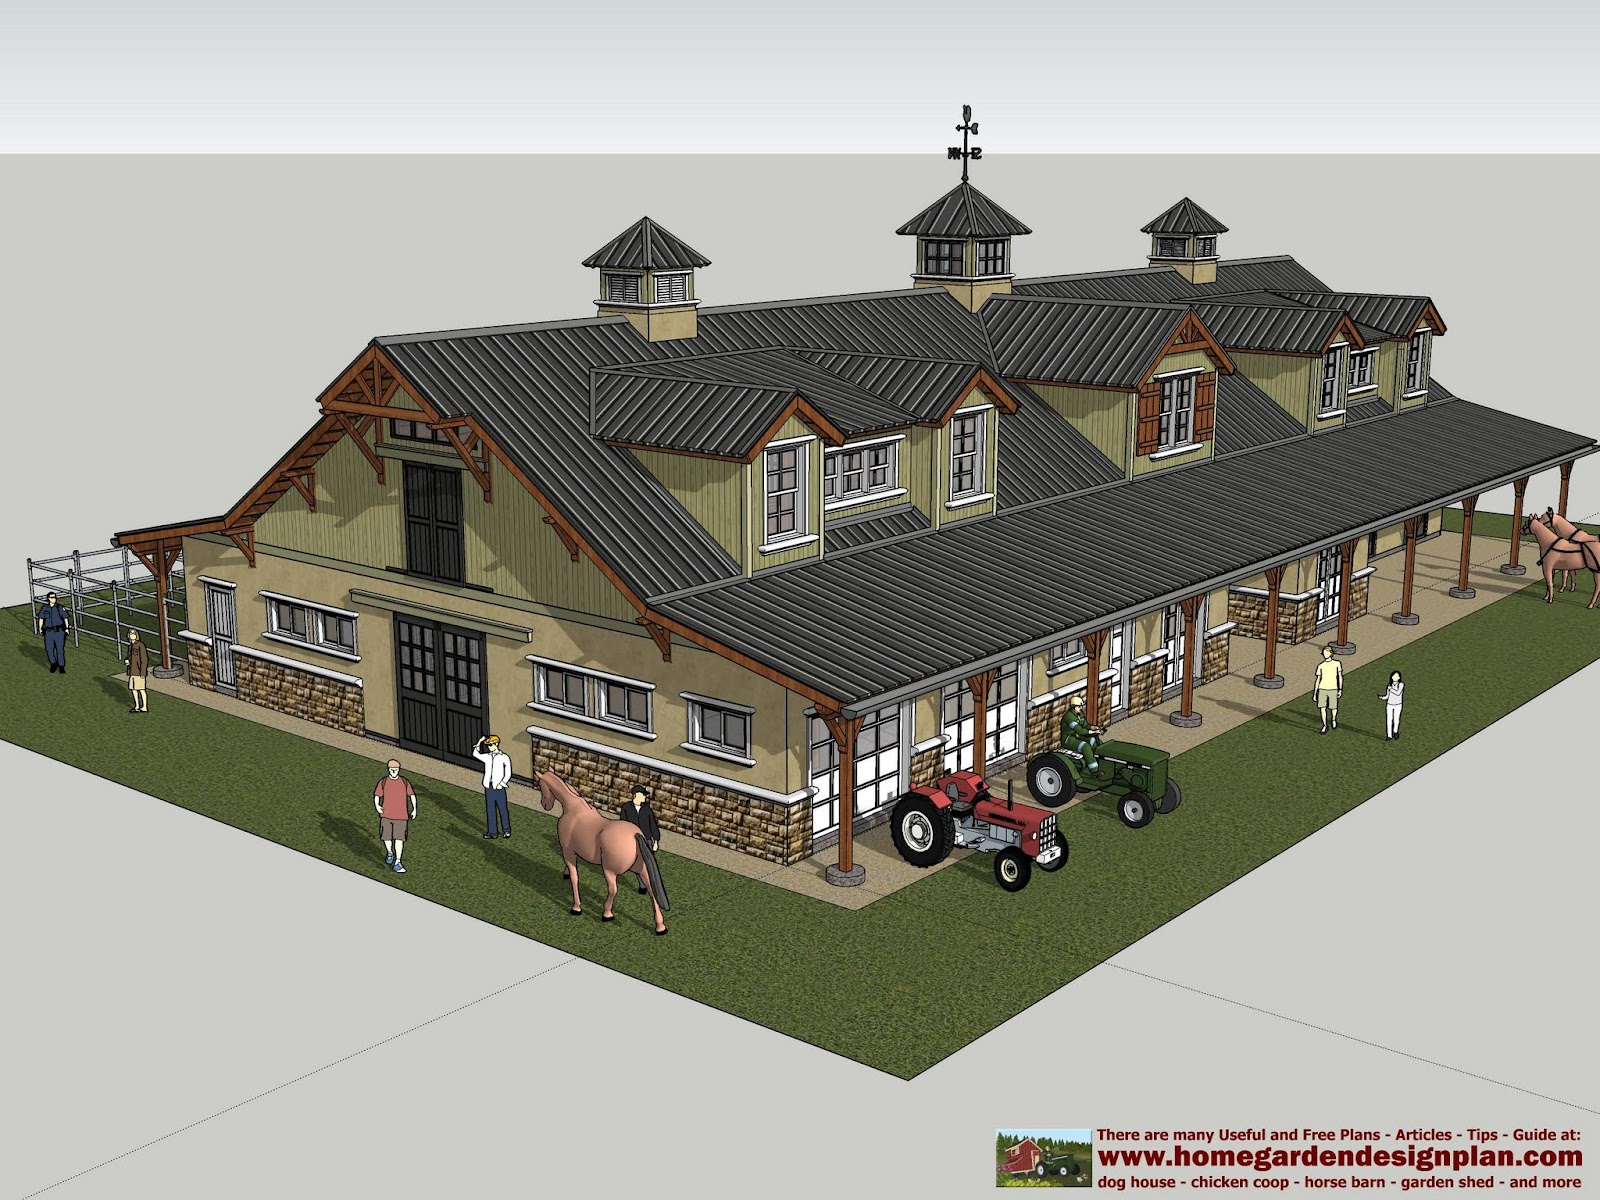 Home garden plans hb100 horse barn plans horse barn for Horse barn designs